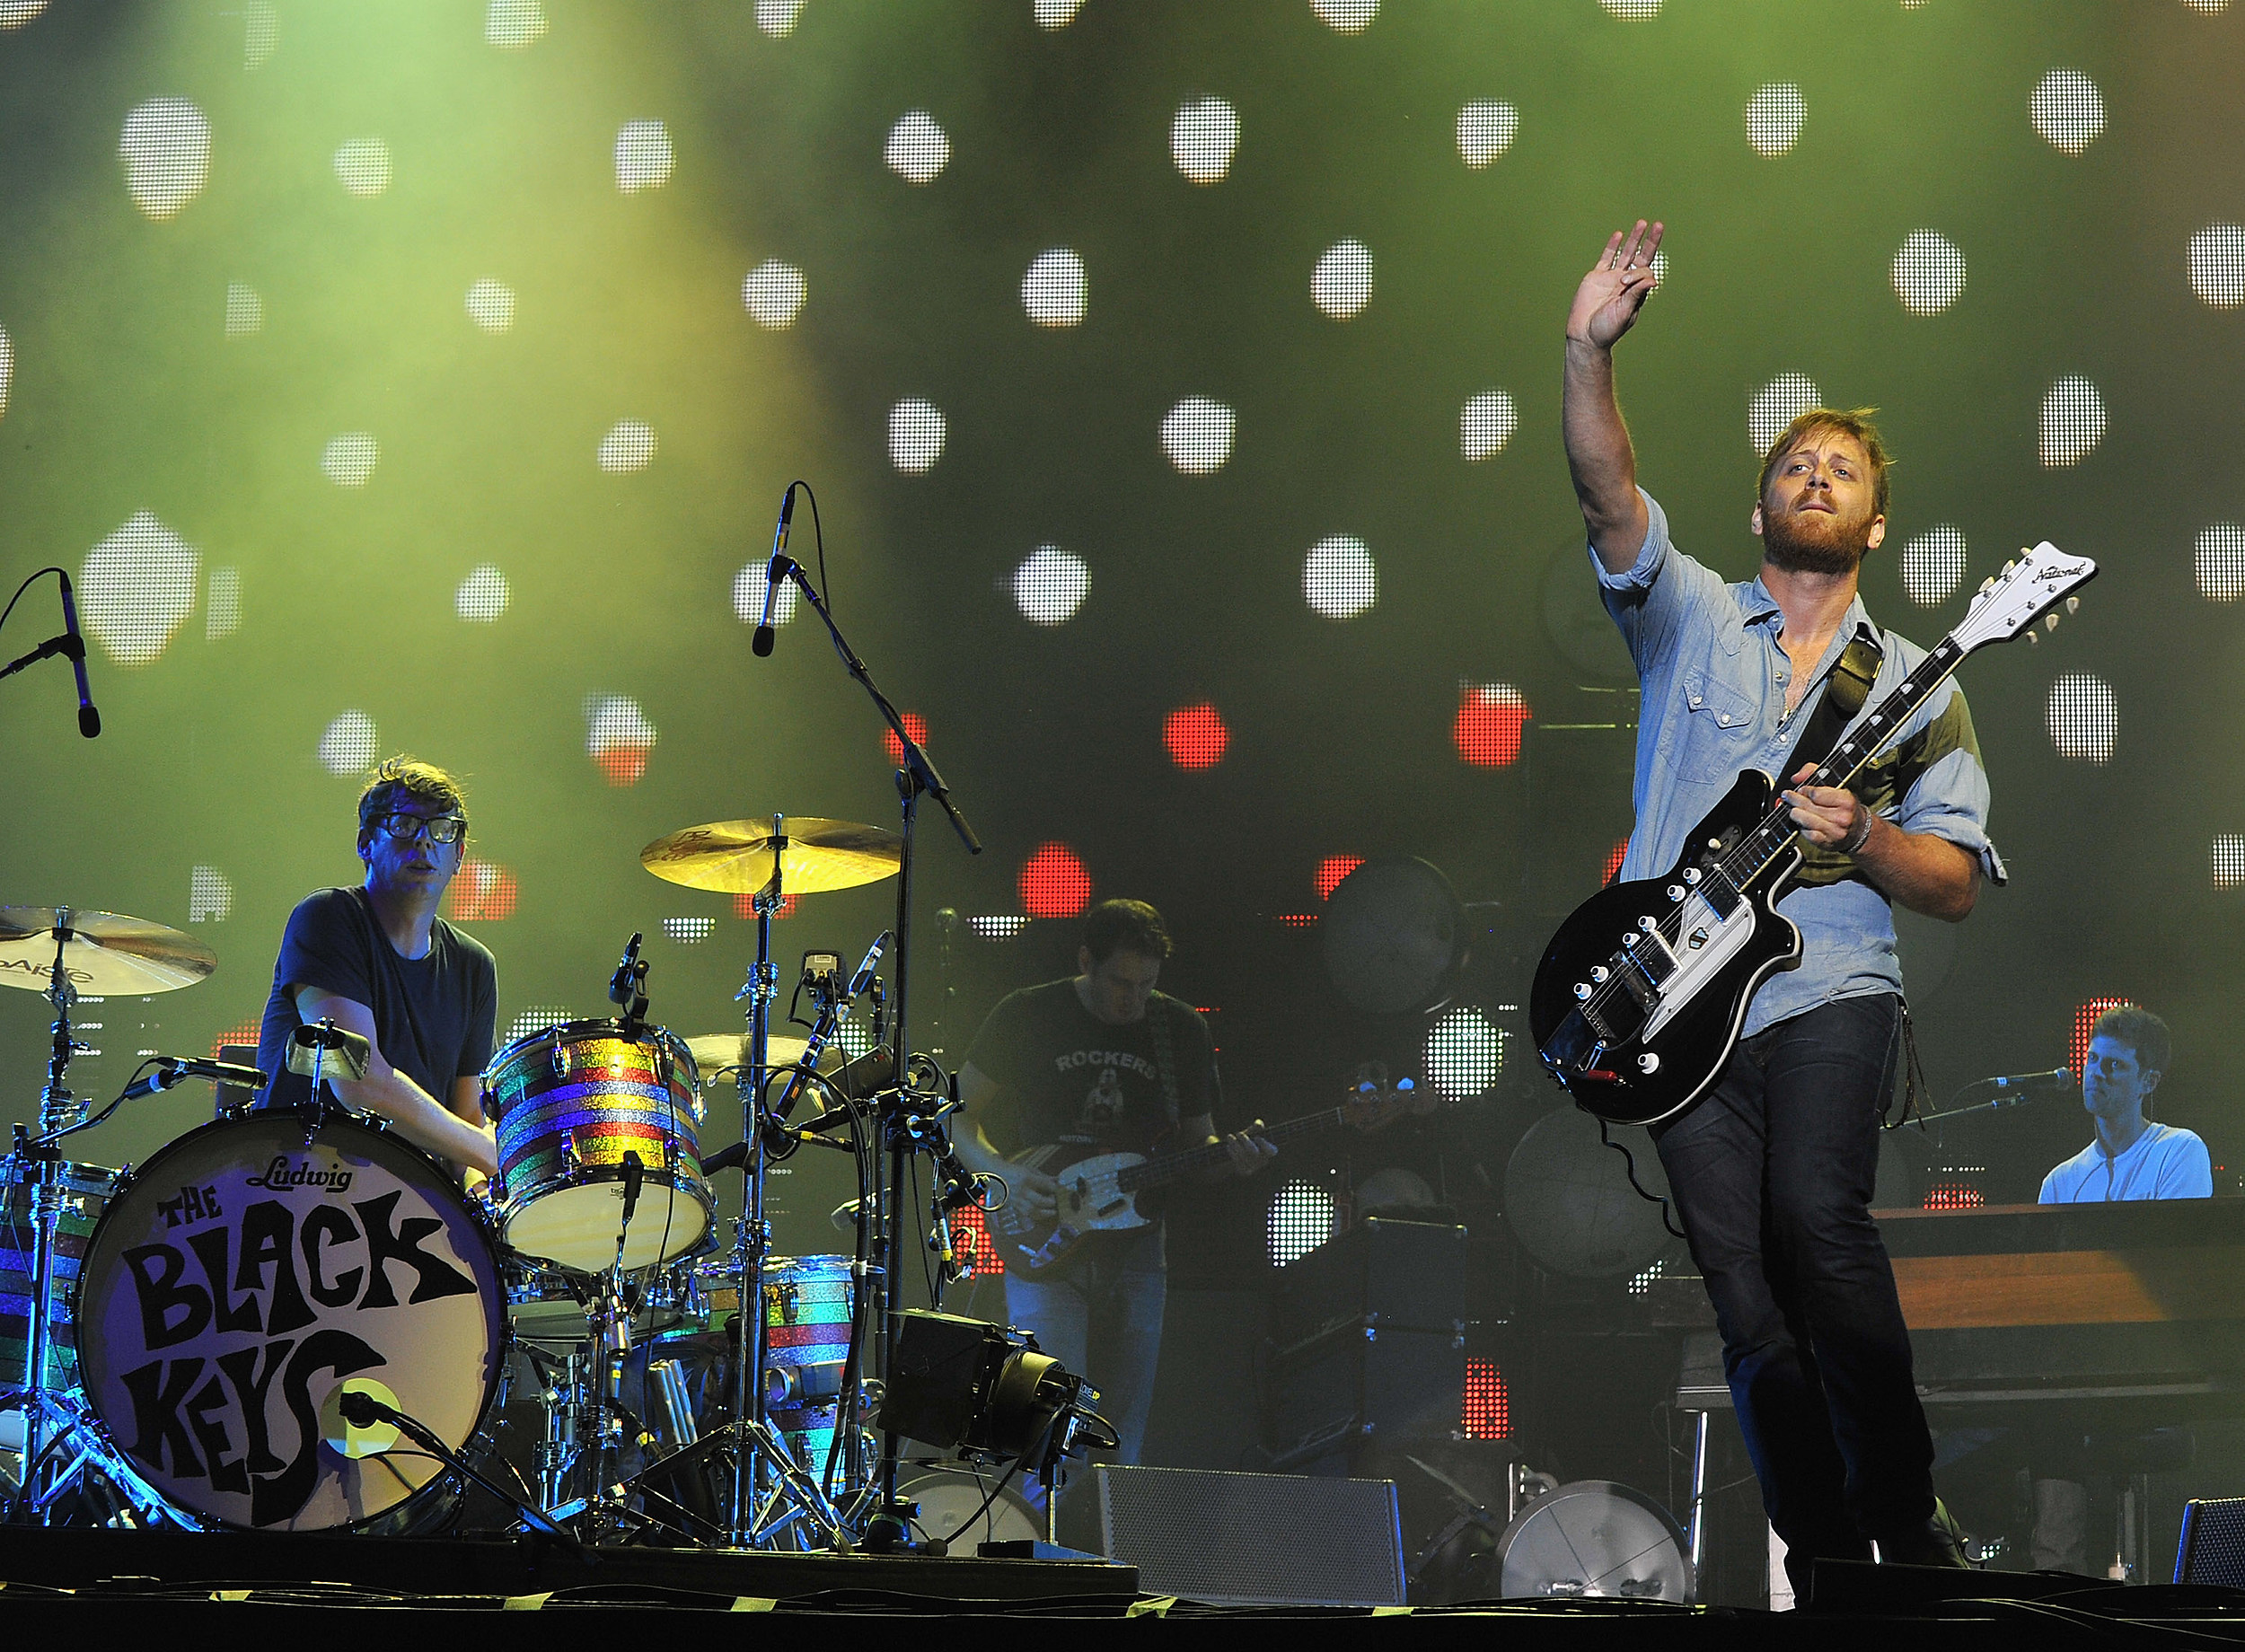 Black keys announce new cd